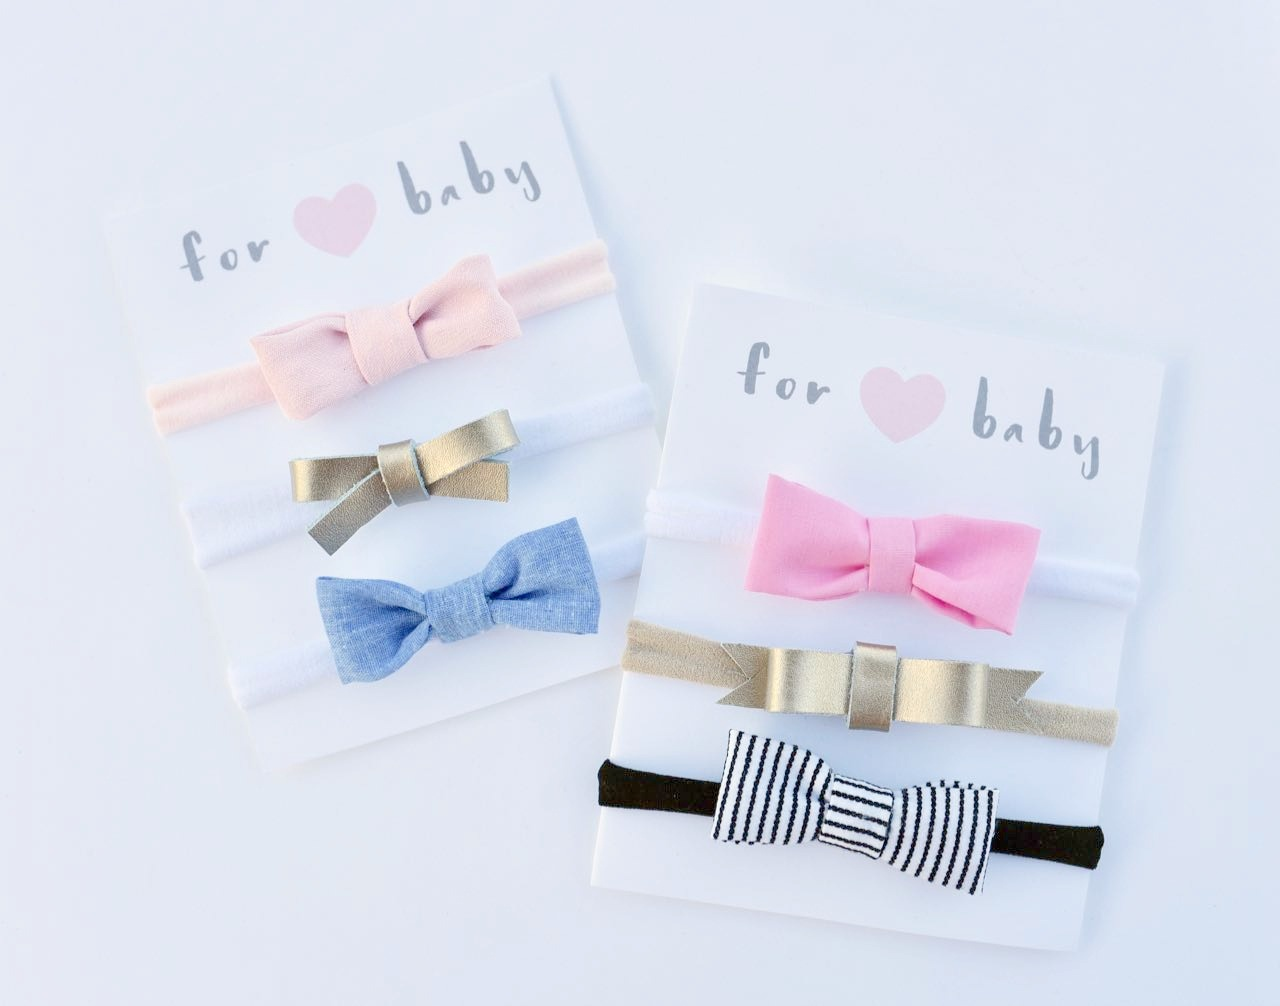 Free Printable Hair Bow Cards For Diy Hair Bows And Headbands - Make - To Have And To Hold Your Hair Back Free Printable